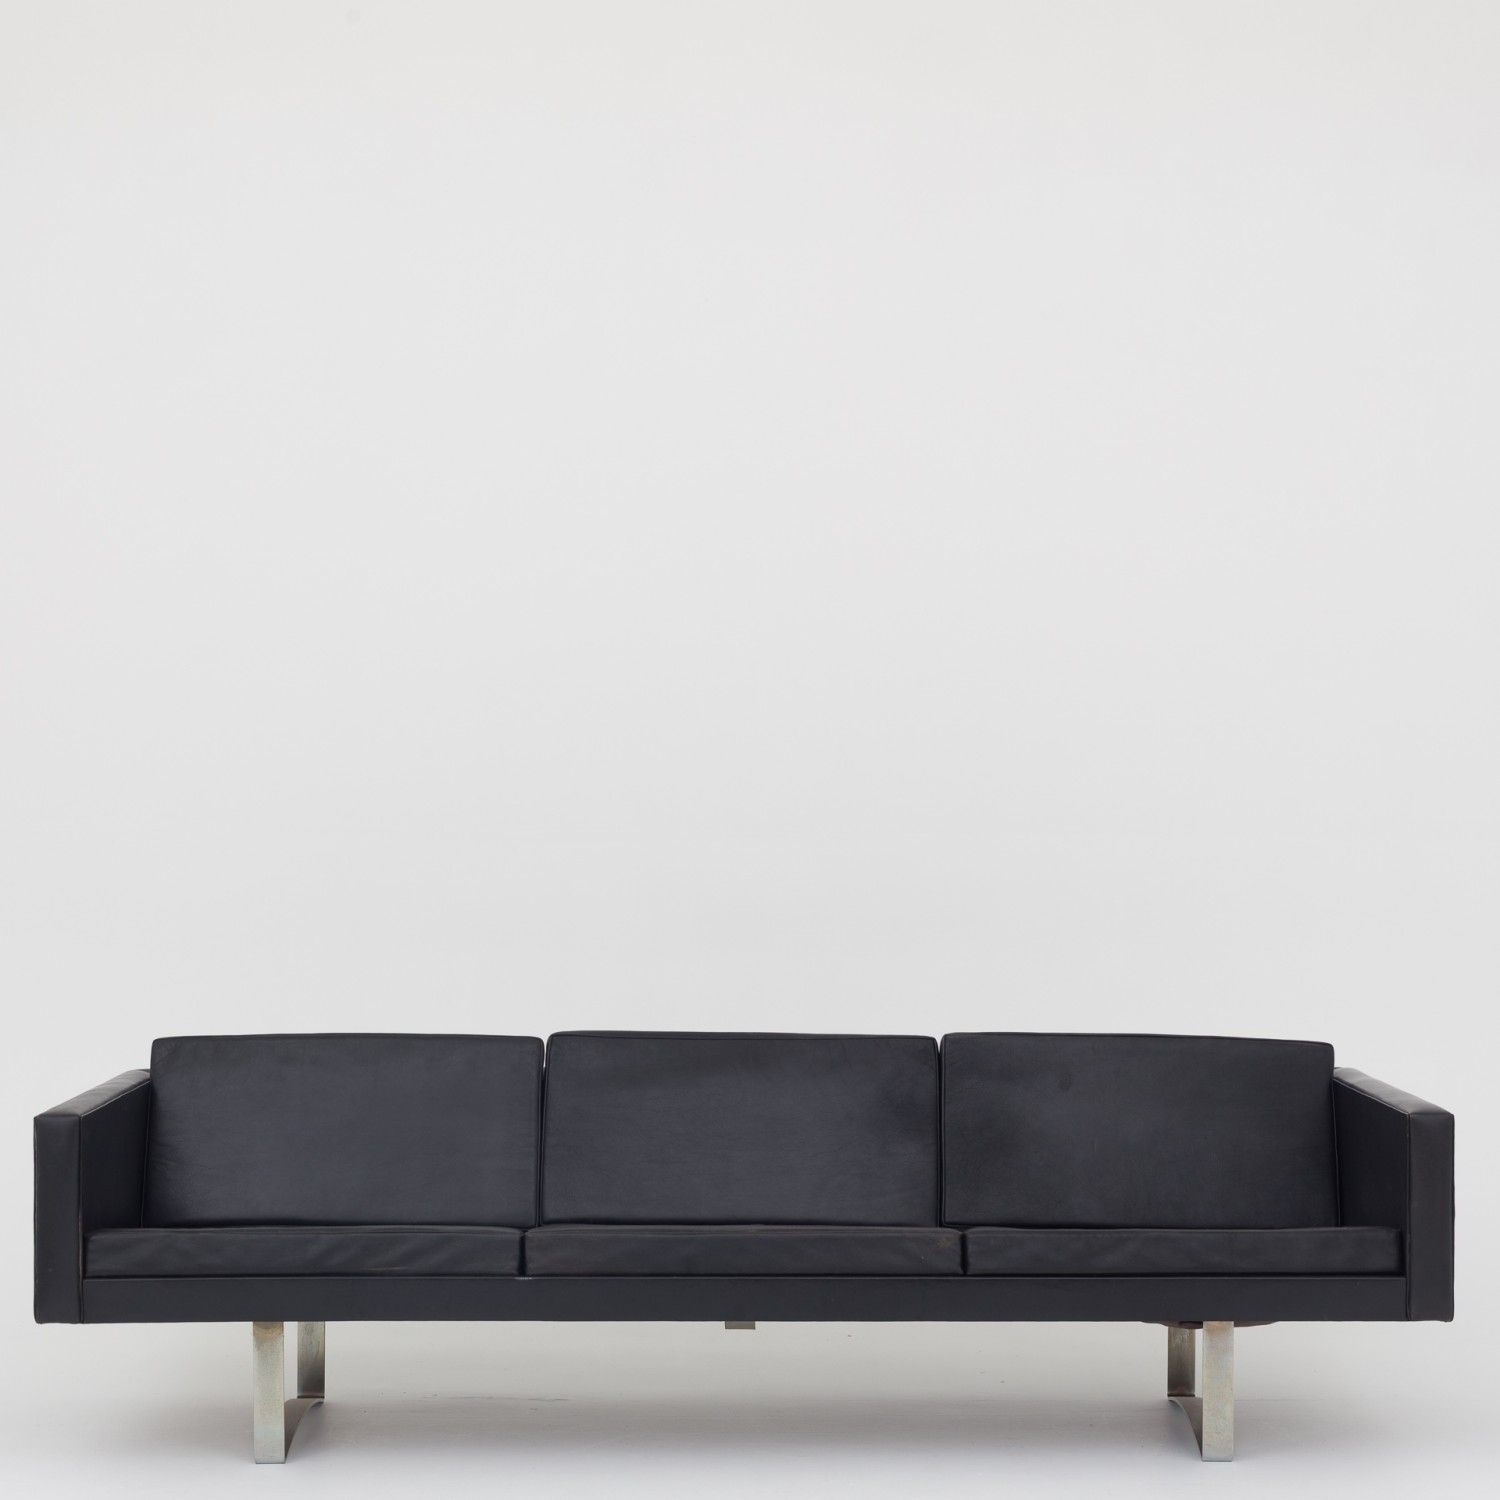 Model 401 3 Seater Sofa In Black Leather Sofas Pinterest